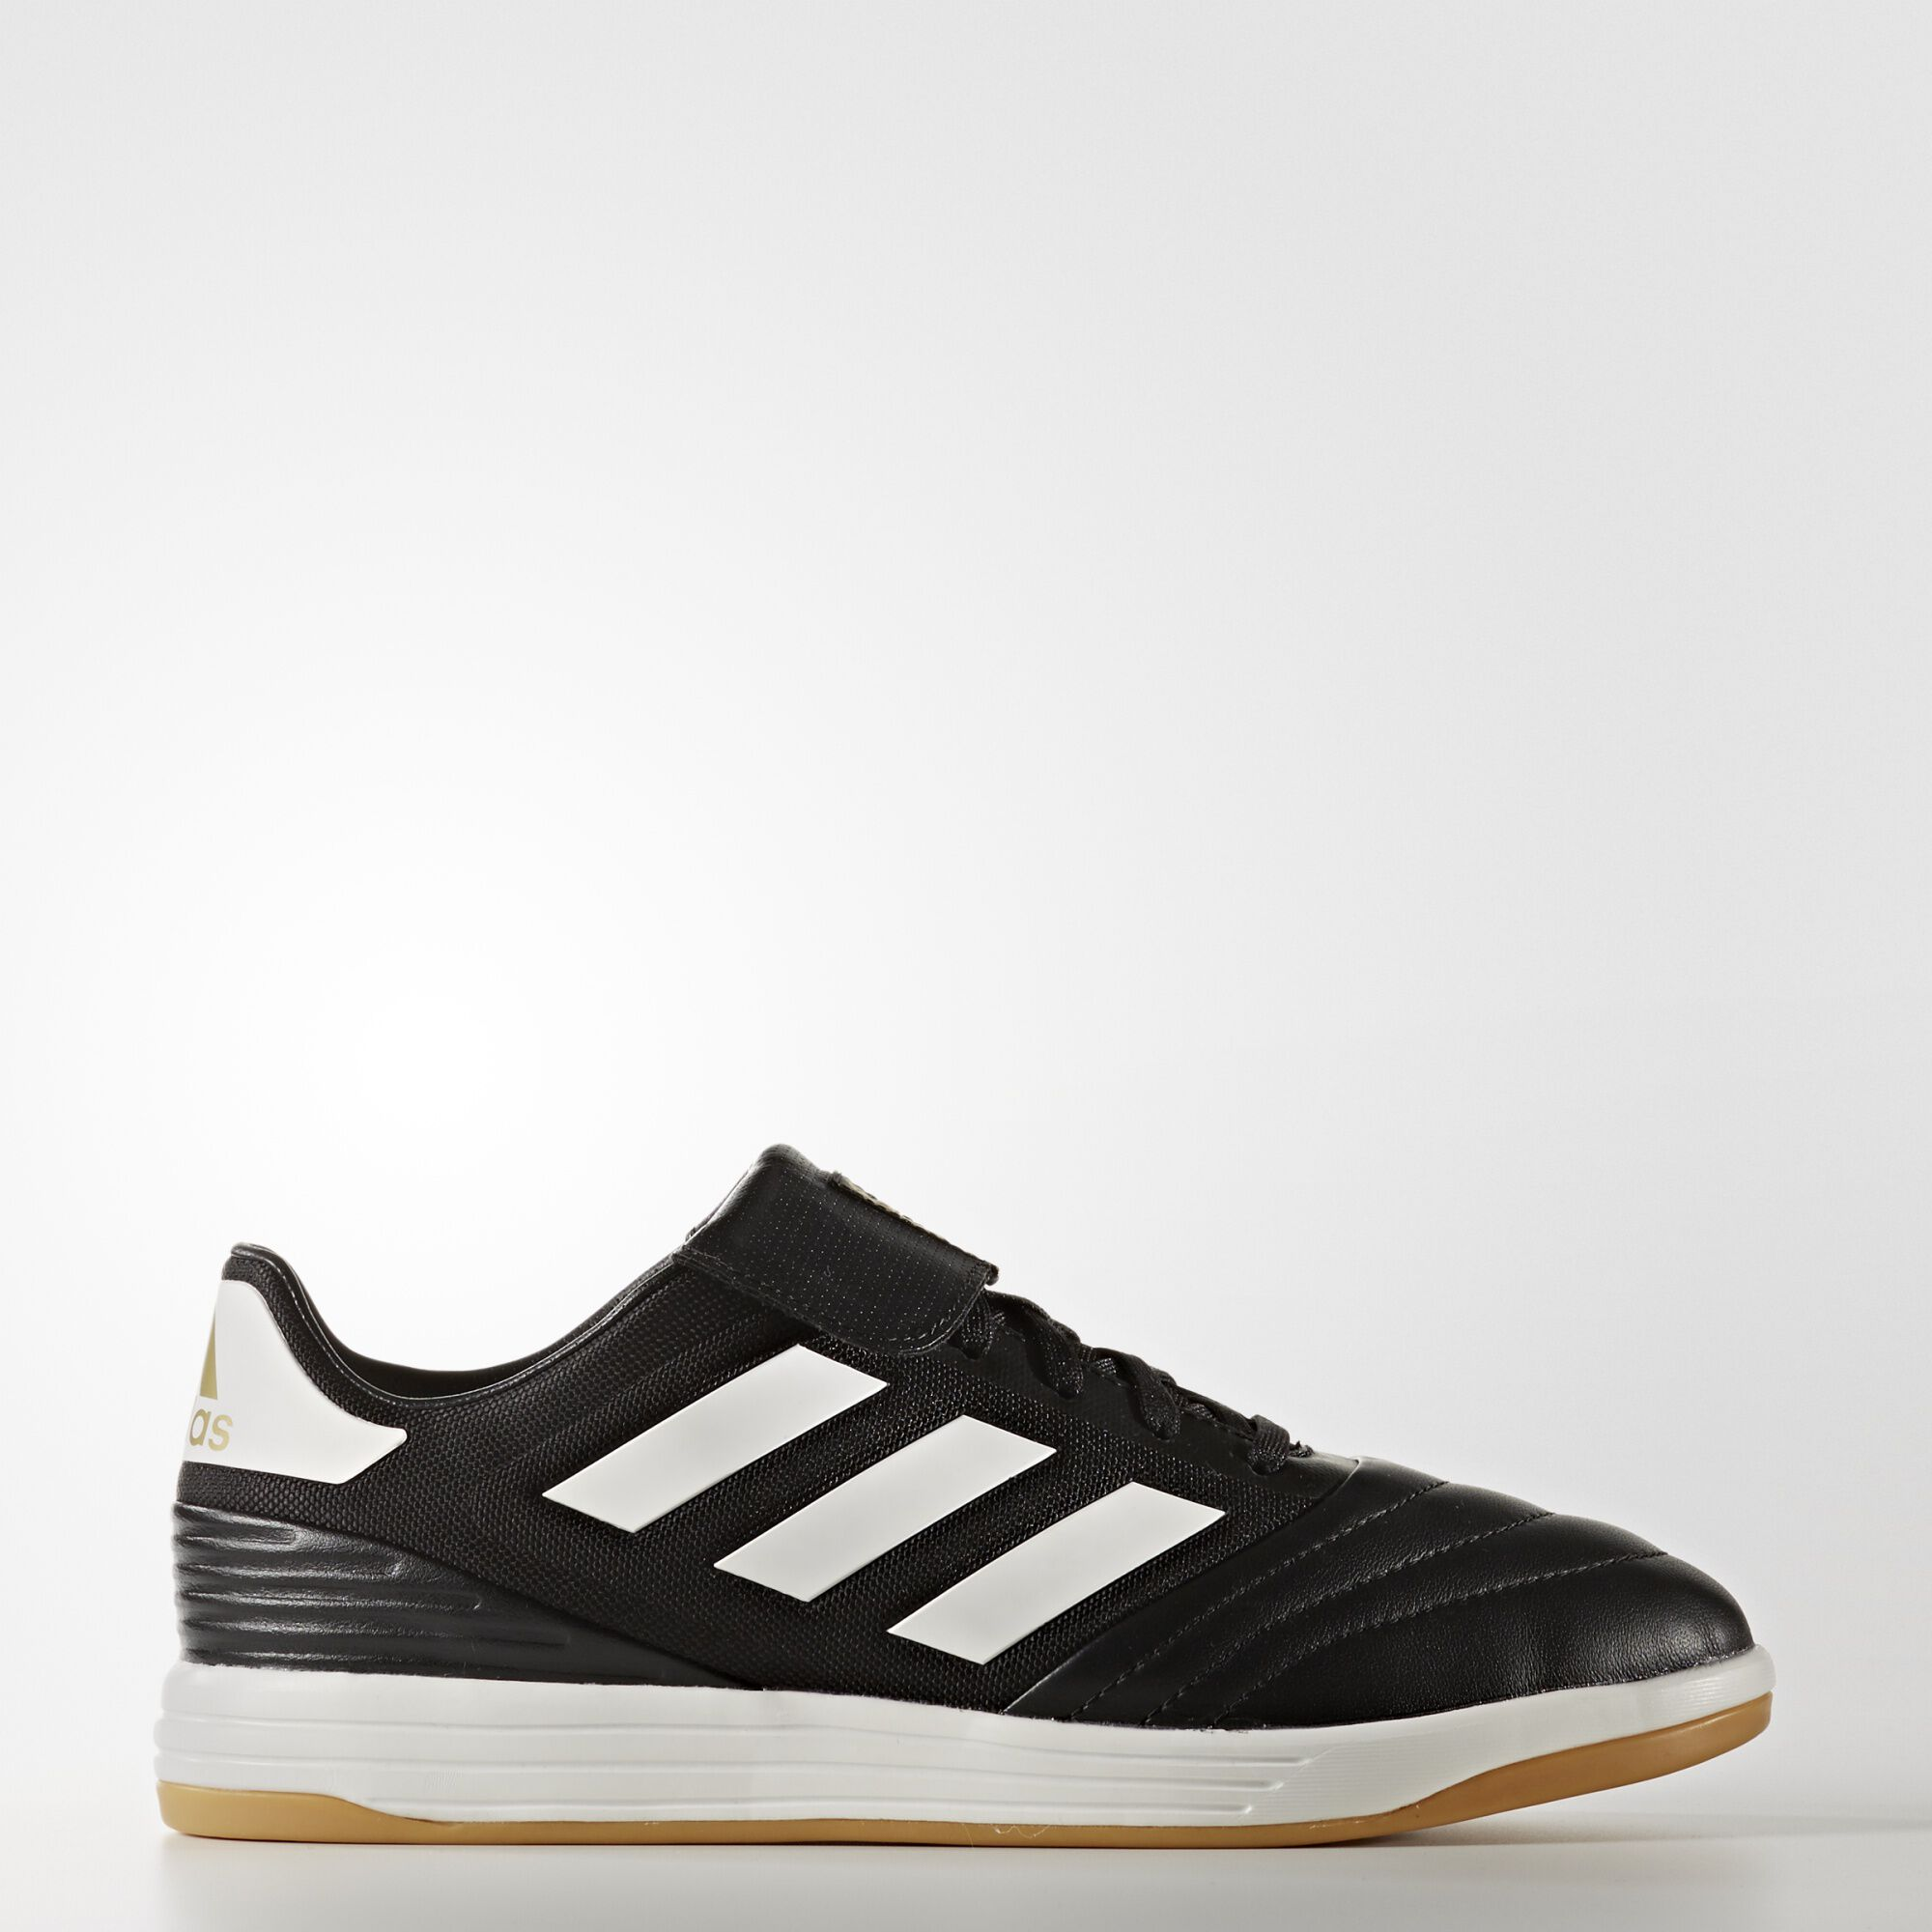 Adidas Shoes Soccer Indoor